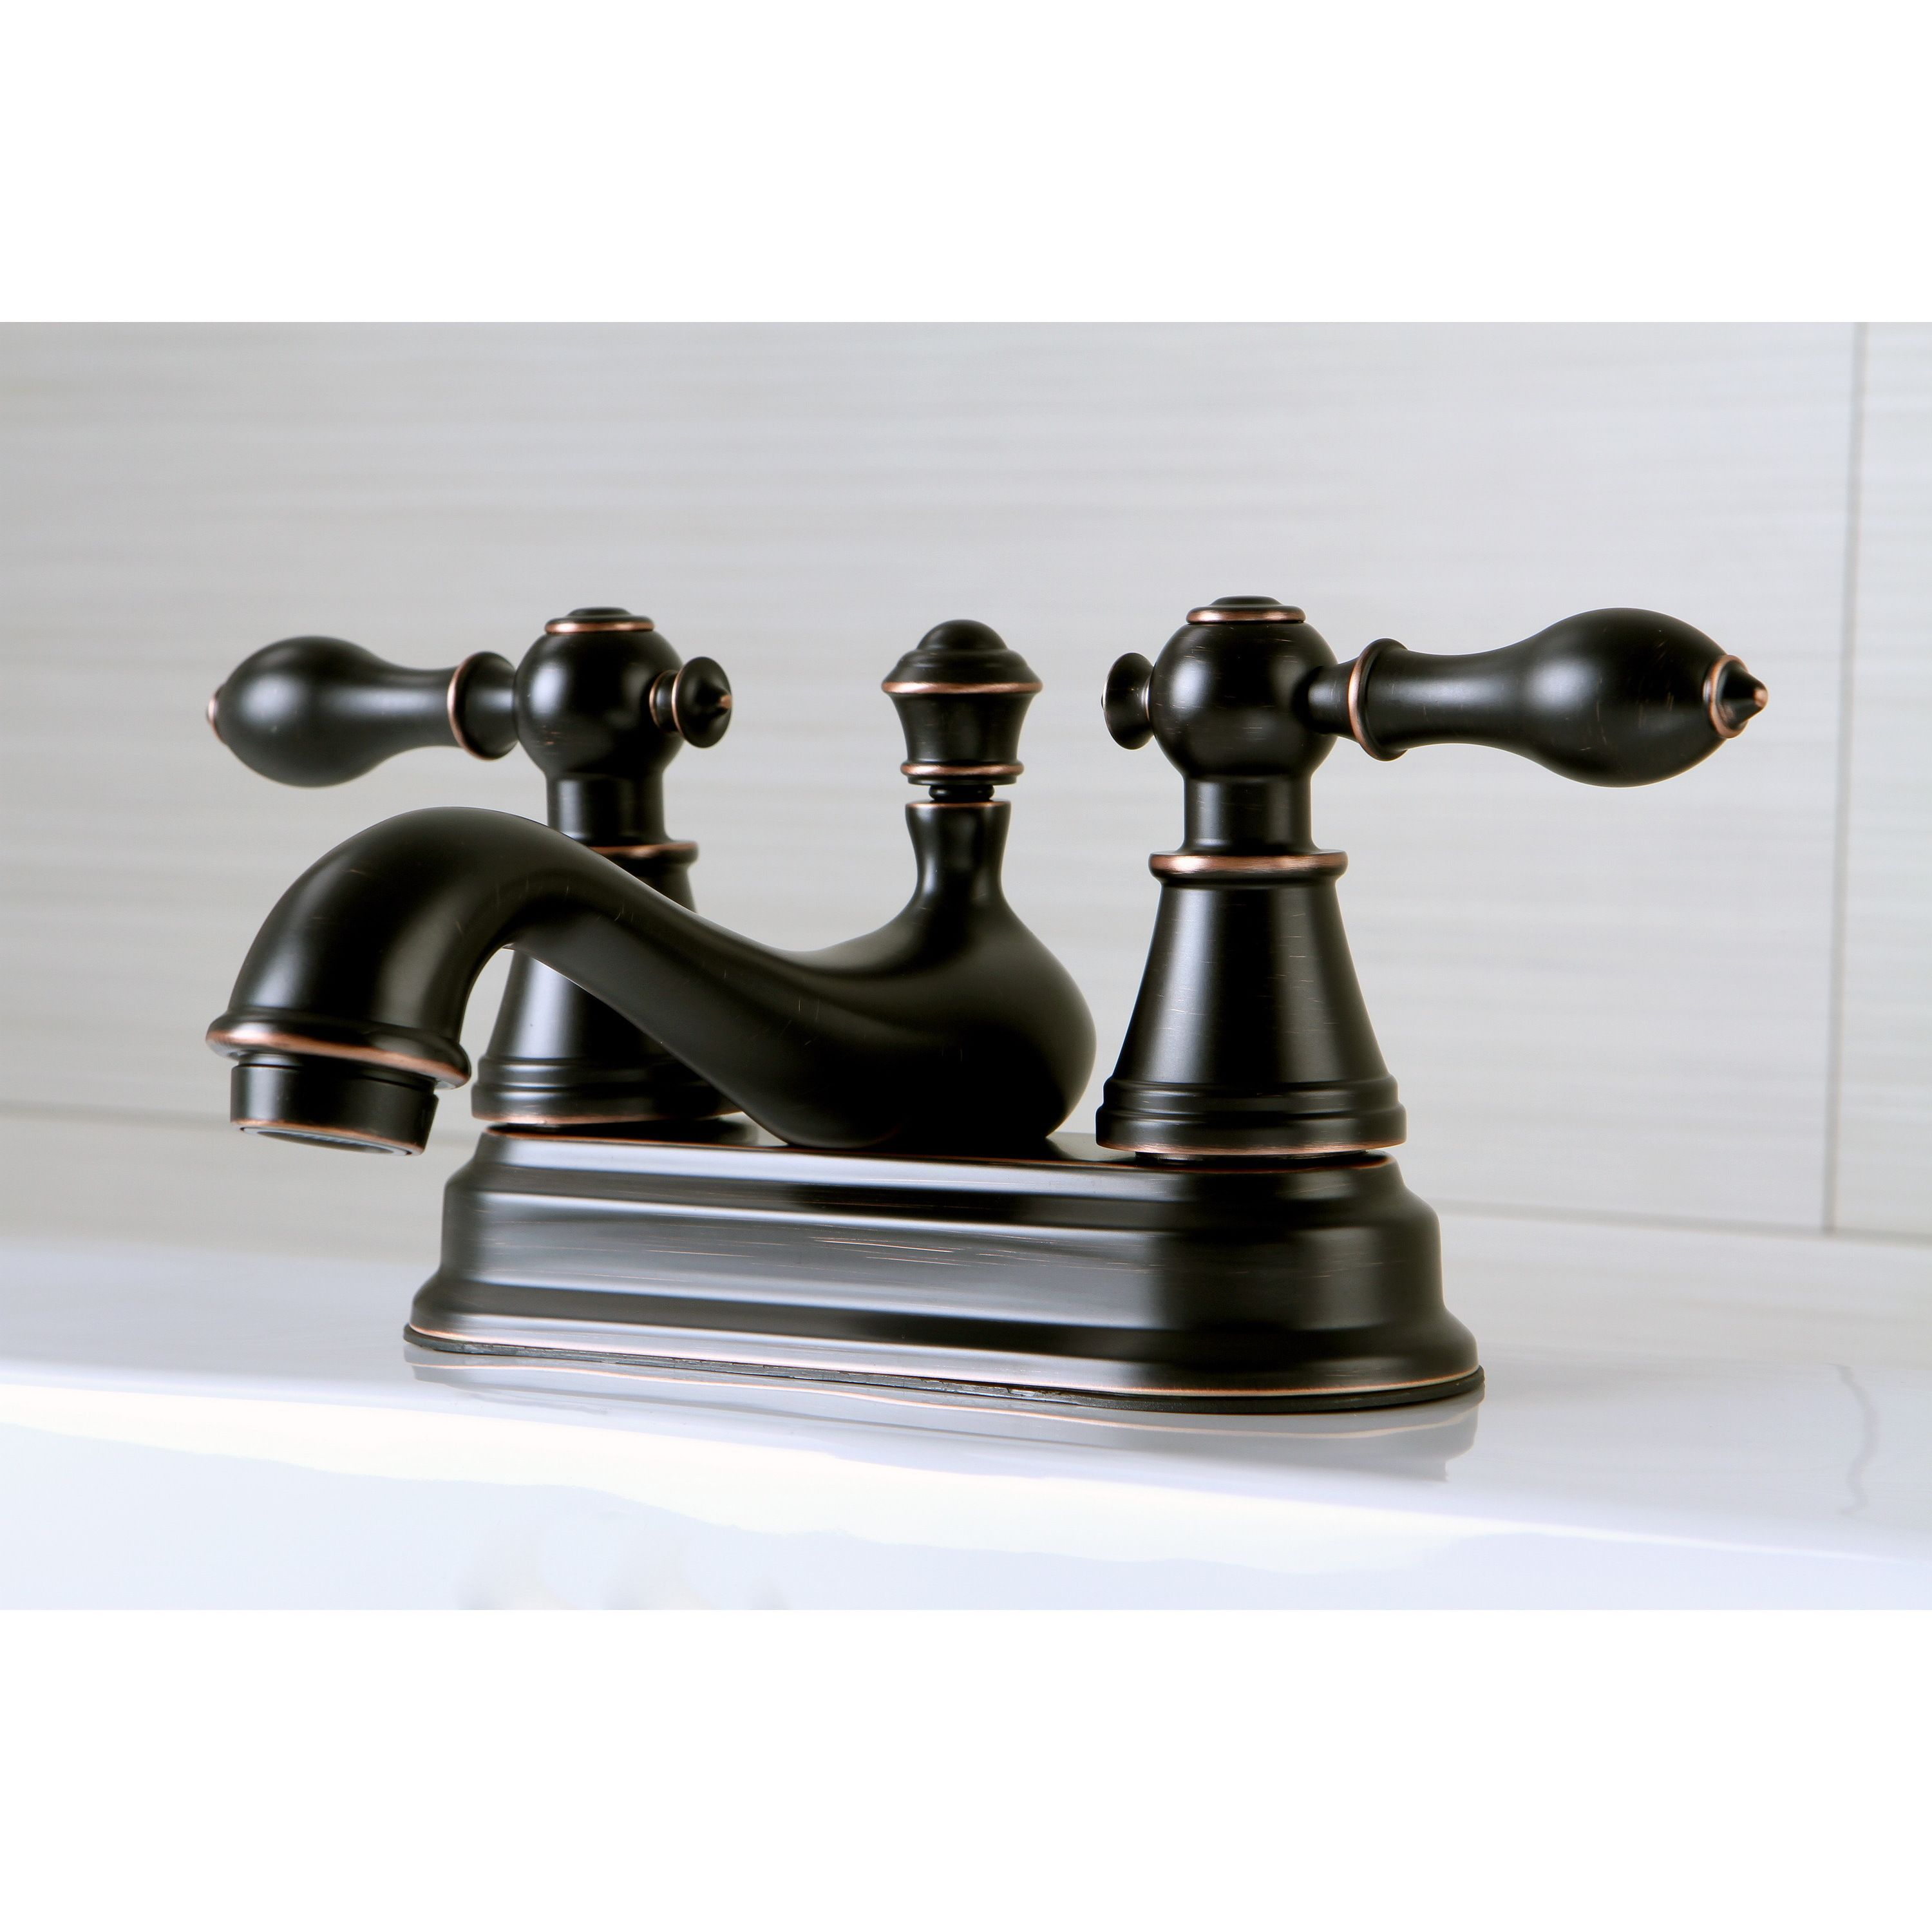 Kingston Brass Traditional 2 Tone Oil Rubbed Bronze 4 Inch Centerset Bathroom Faucet Oil Rubbed Bronze Bat Bathroom Faucets Oil Rubbed Bronze Kingston Brass